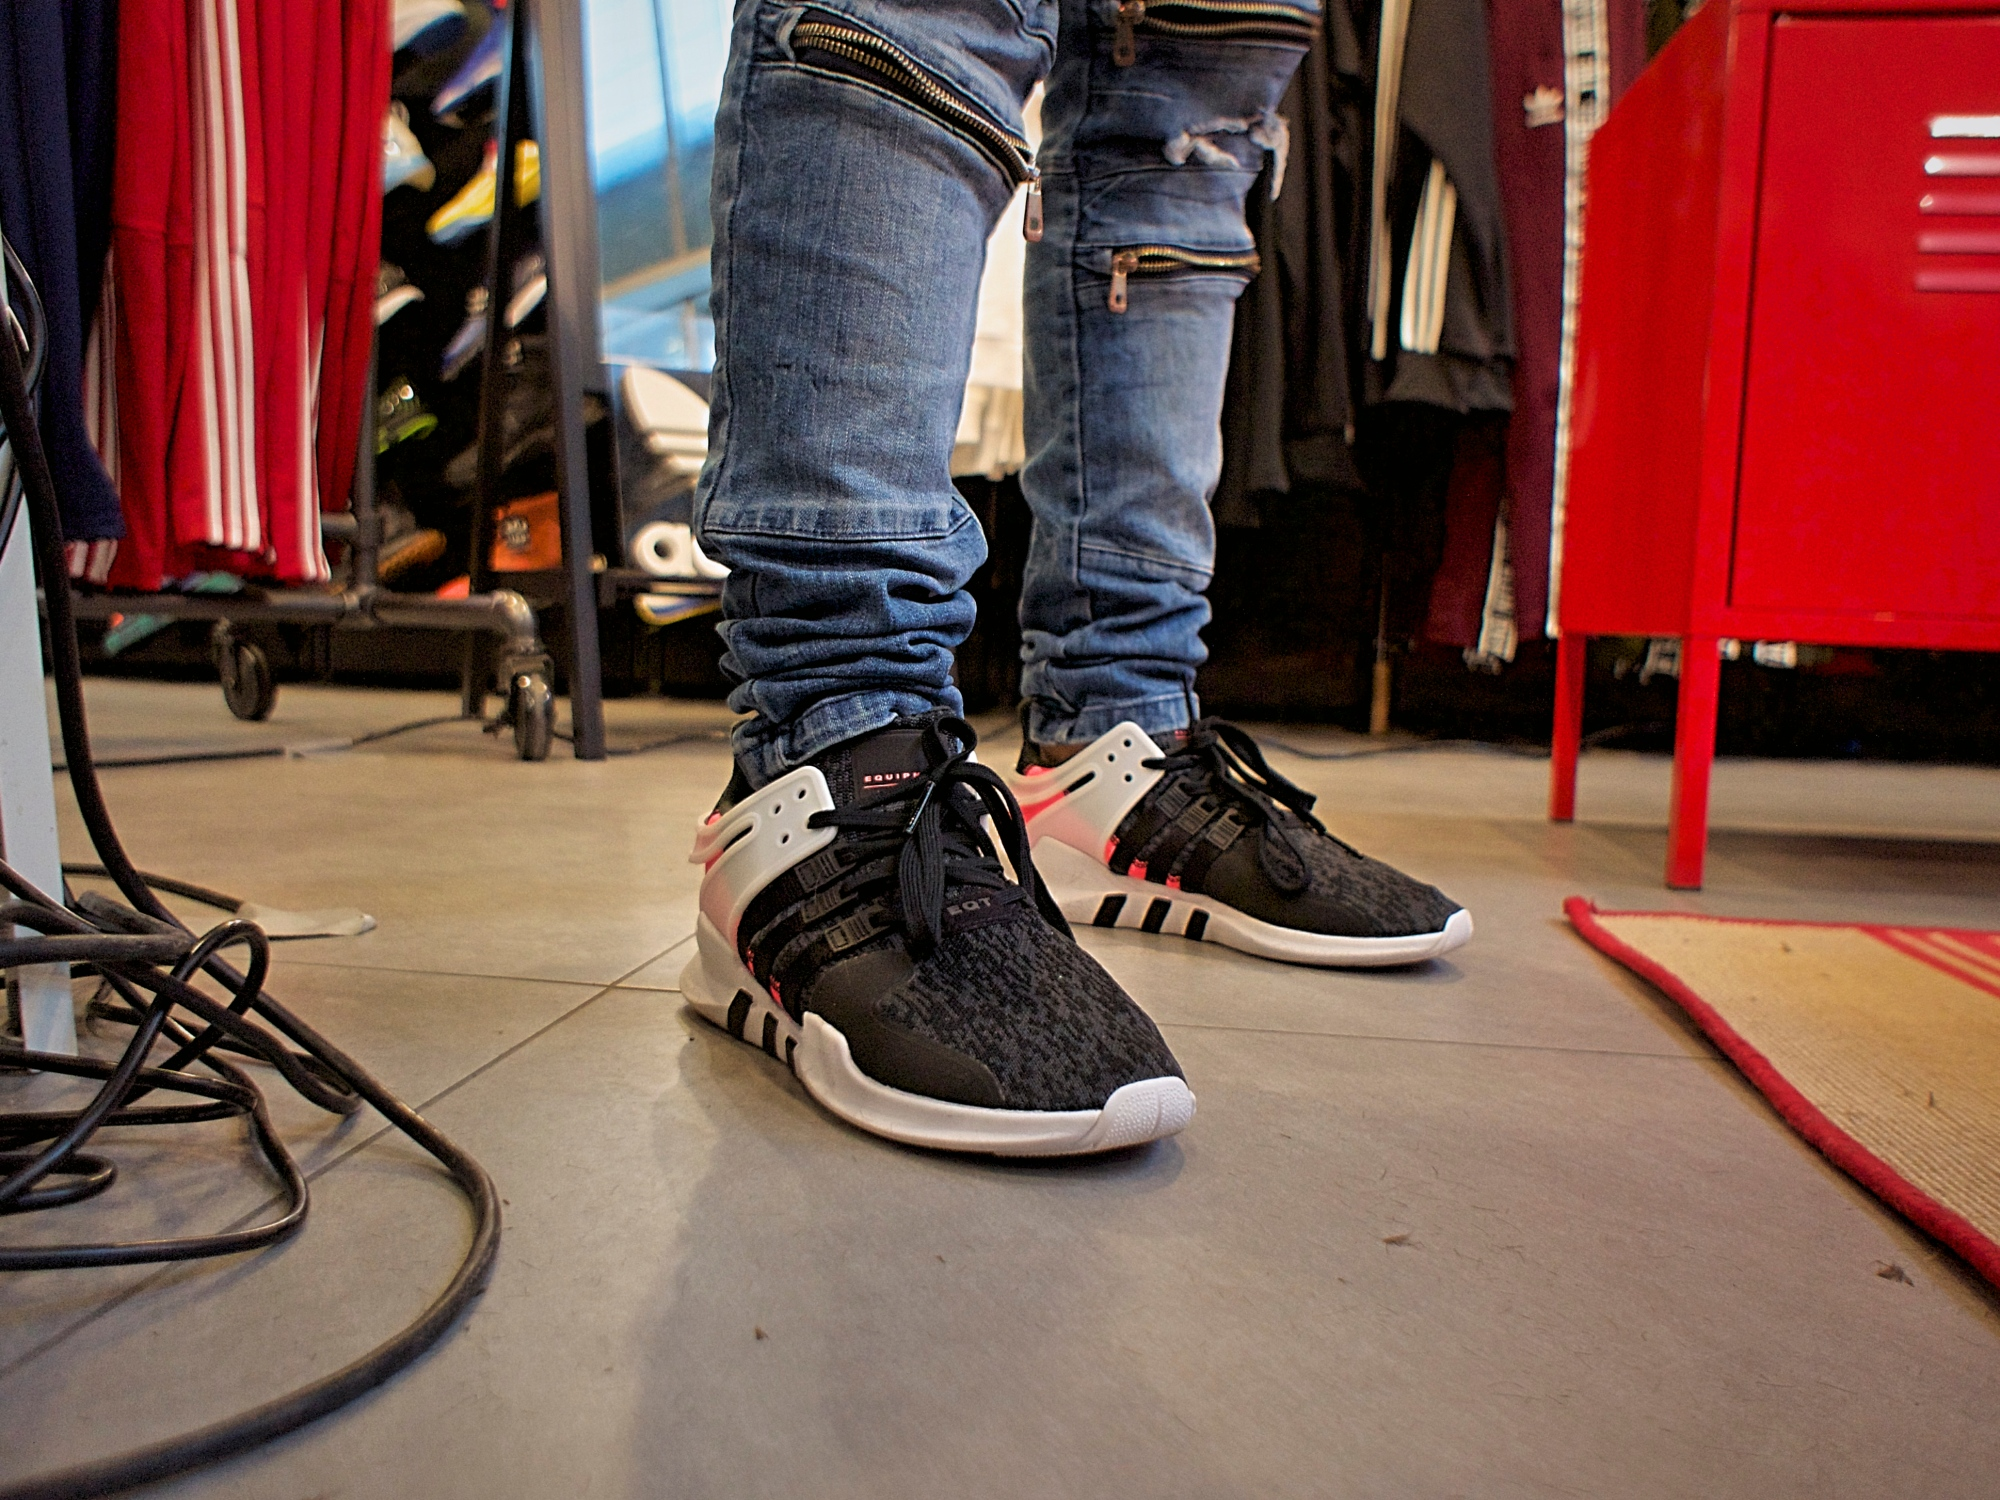 bce77a7147e7 adidas EQT Collection Launch by Foot Locker Canada – TORONTO – The ...